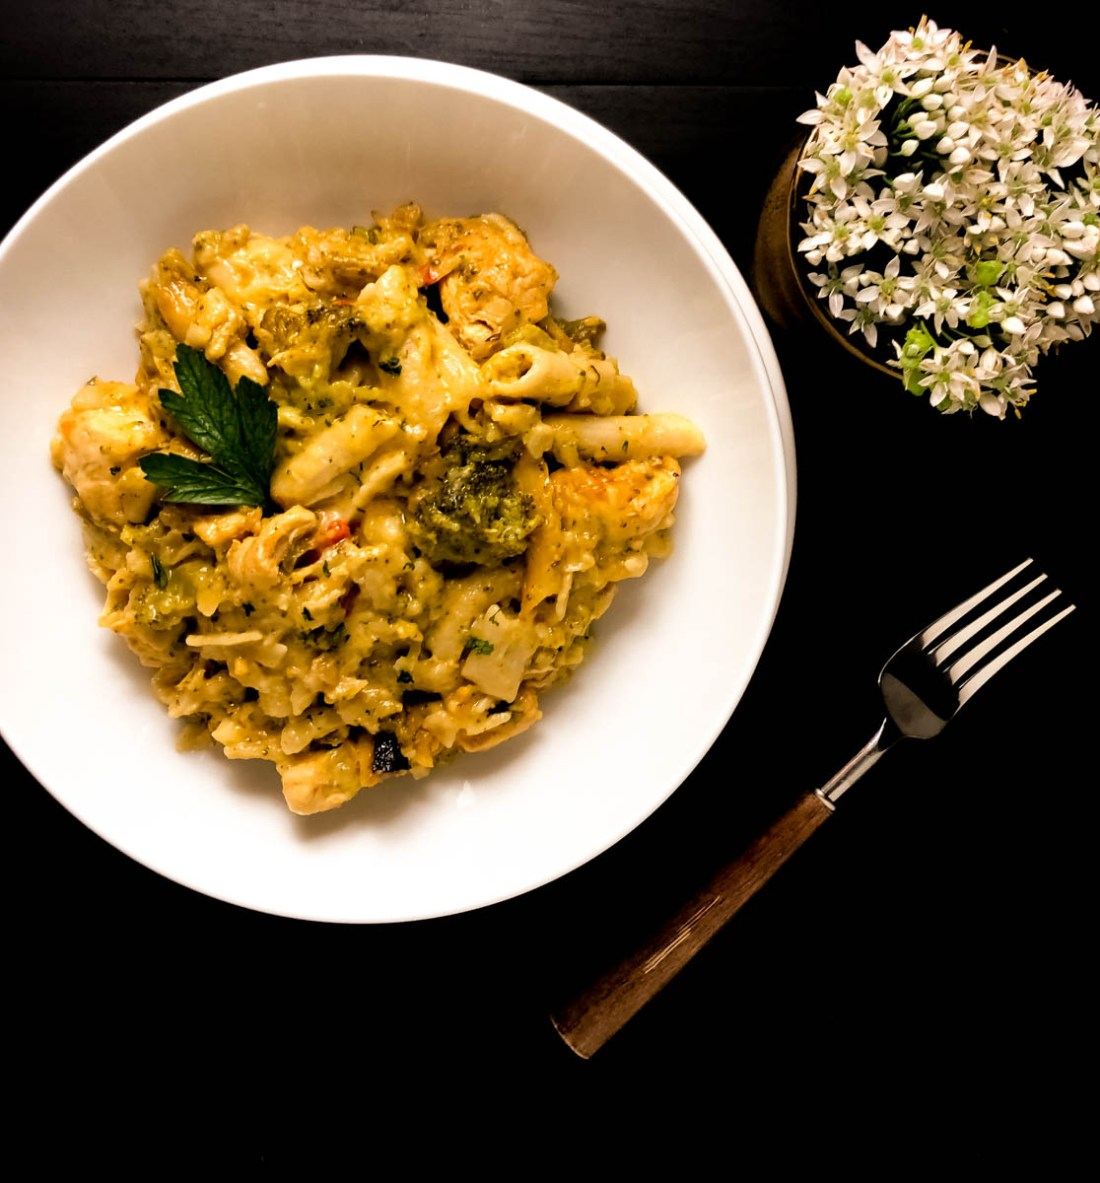 A round white plate filled with gluten free cheesy chicken broccoli pasta against a black background.